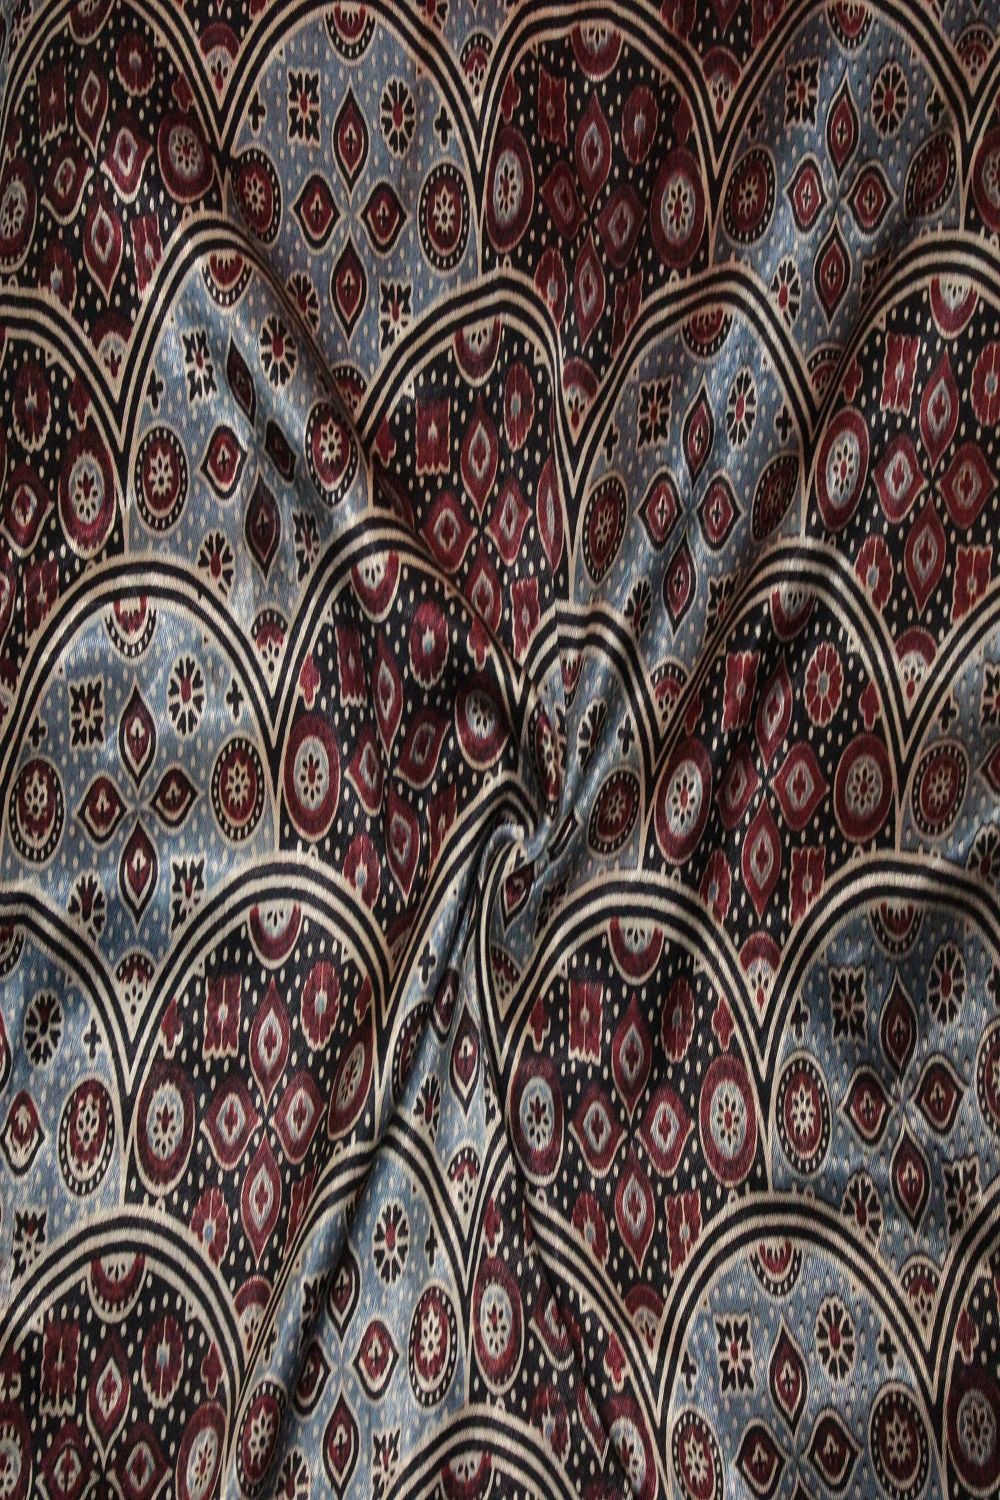 Mashru Silk Block Print Fabric - GleamBerry